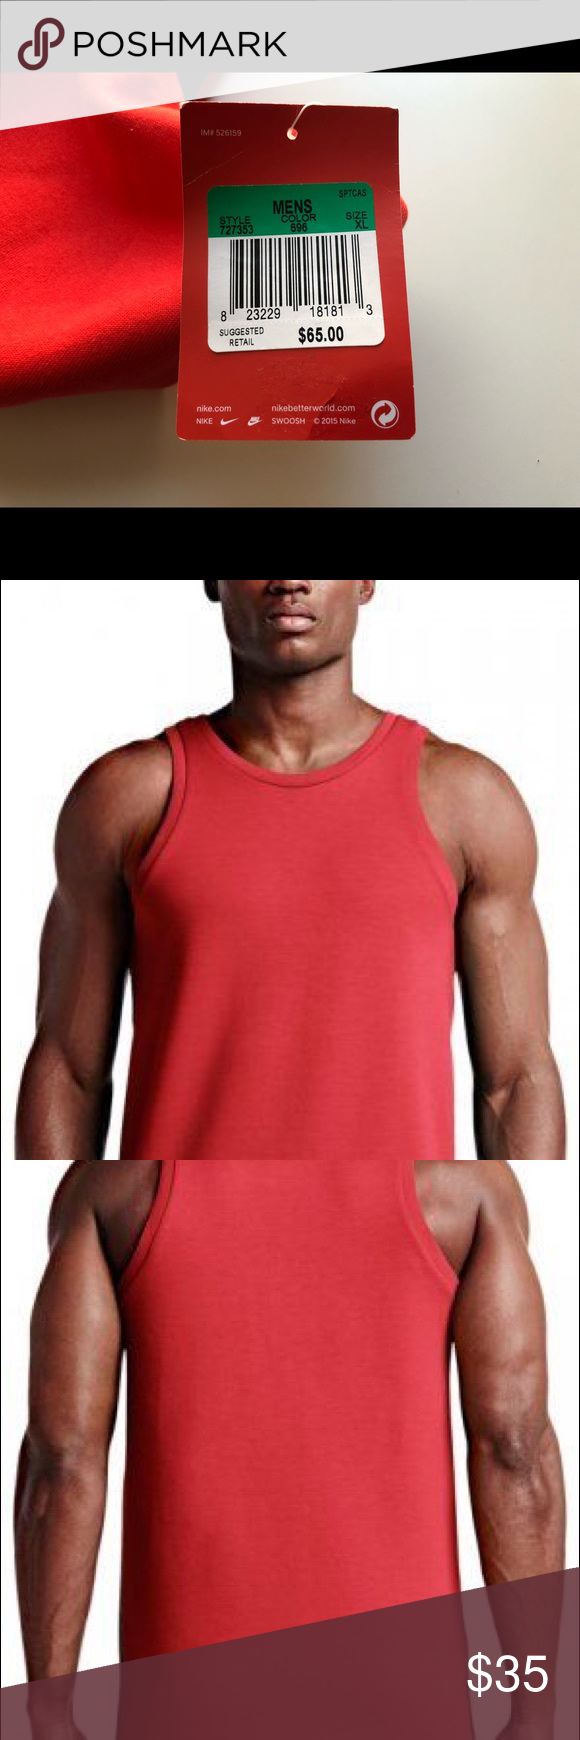 49cc2de970f4f7 Men s Nike Sportswear Tech fleece tank top NWT Brand new with tags only  have size extra-large available. Nike color is light Crimson 727353–696  retail is ...